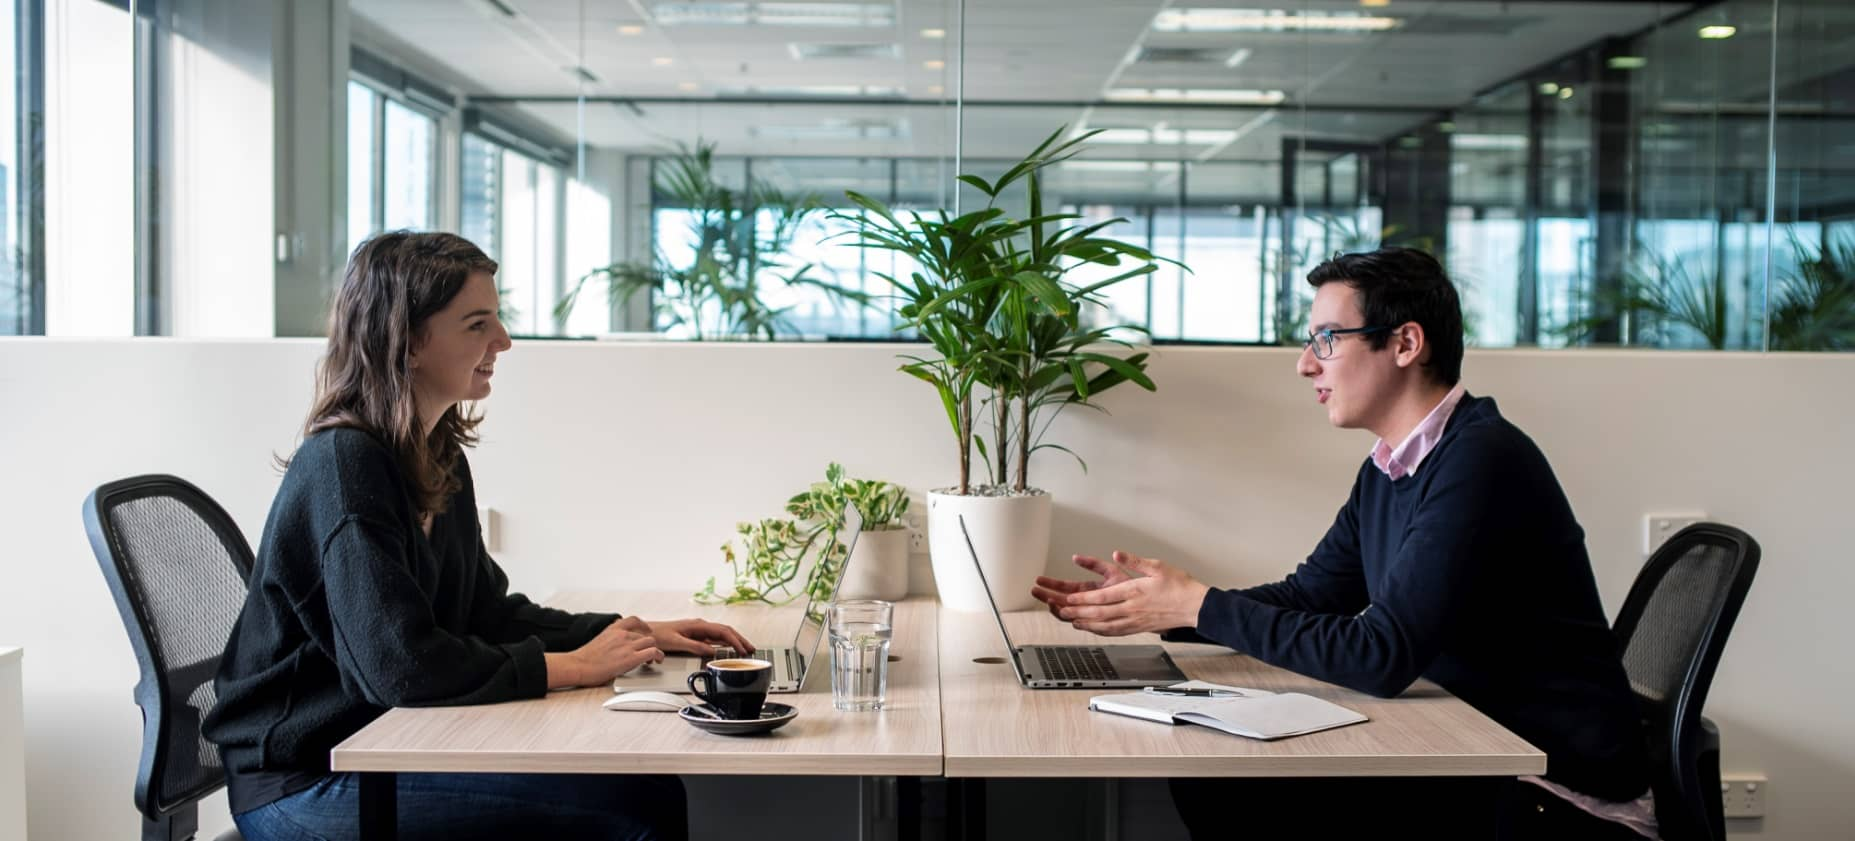 Smartly dressed woman and man working opposite each other in light filled private office